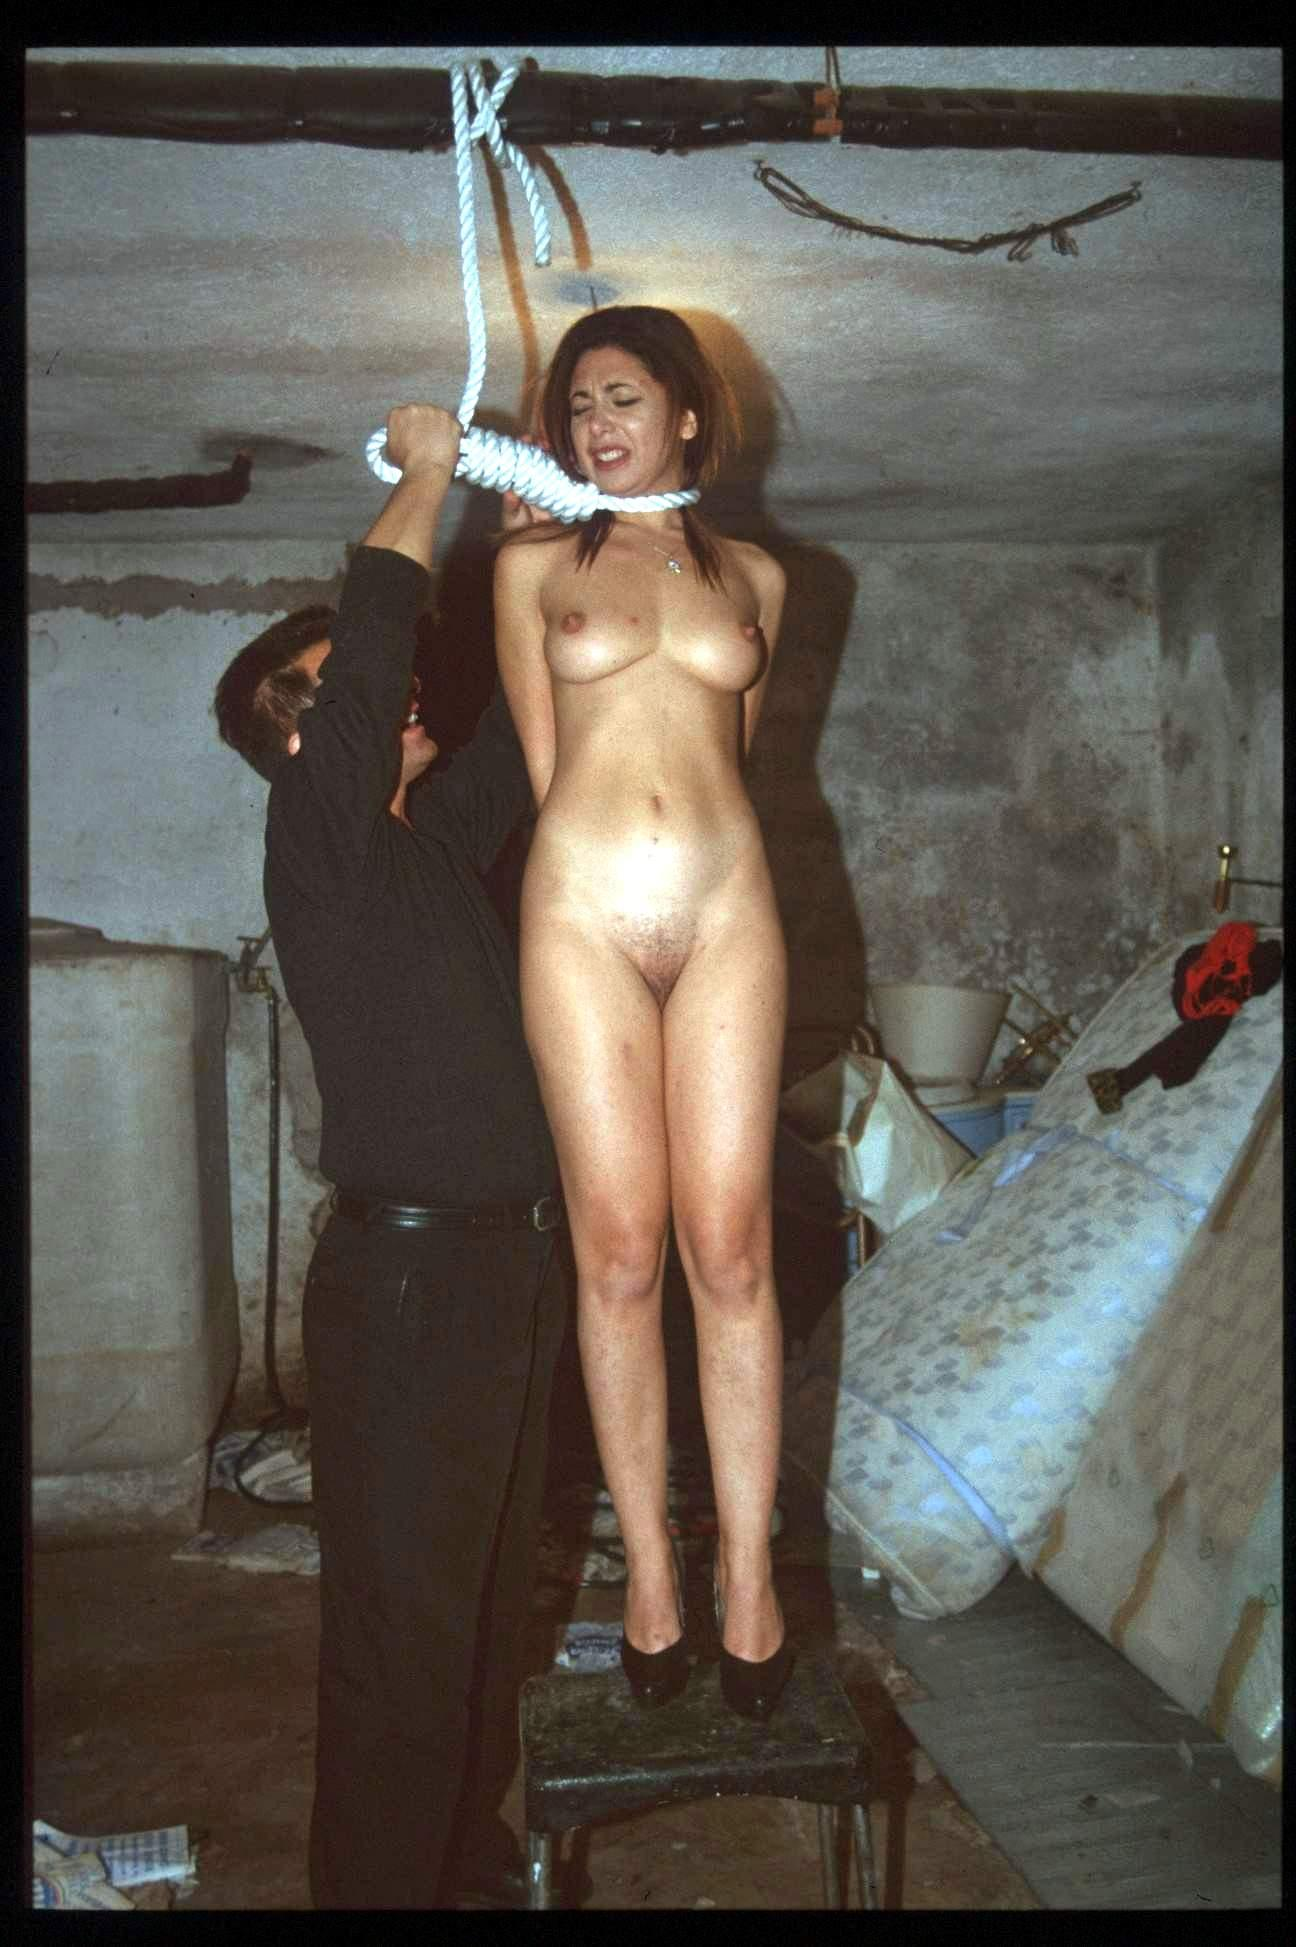 Hanged by neck execution porn smut pics